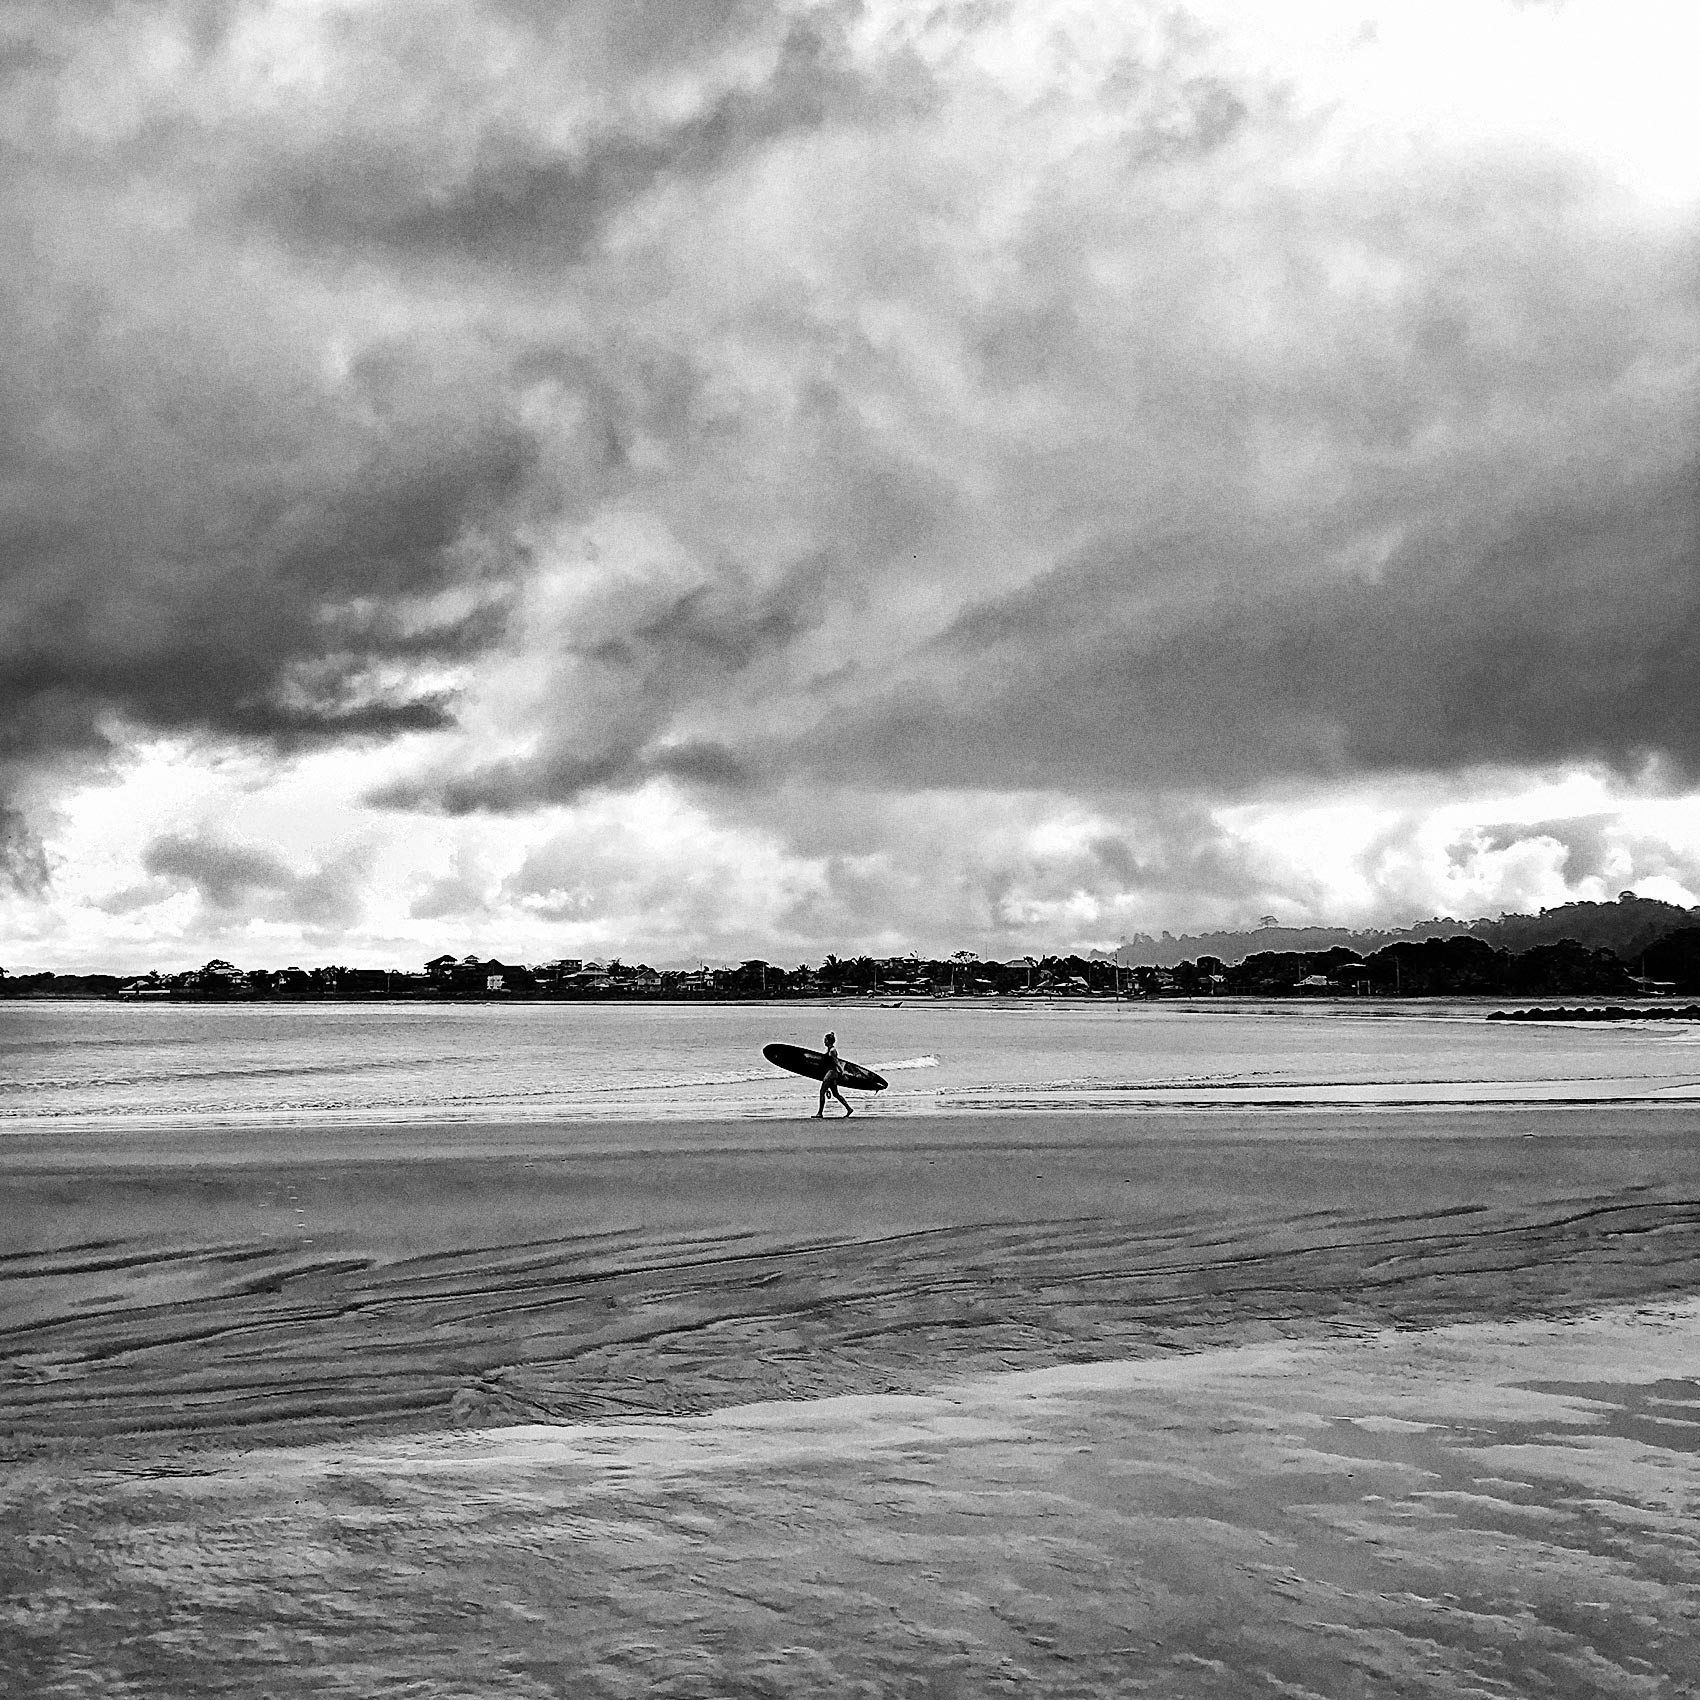 a-surfer-walking-on-the-beach-in-mompiche-ecuador-in-the-early-morning